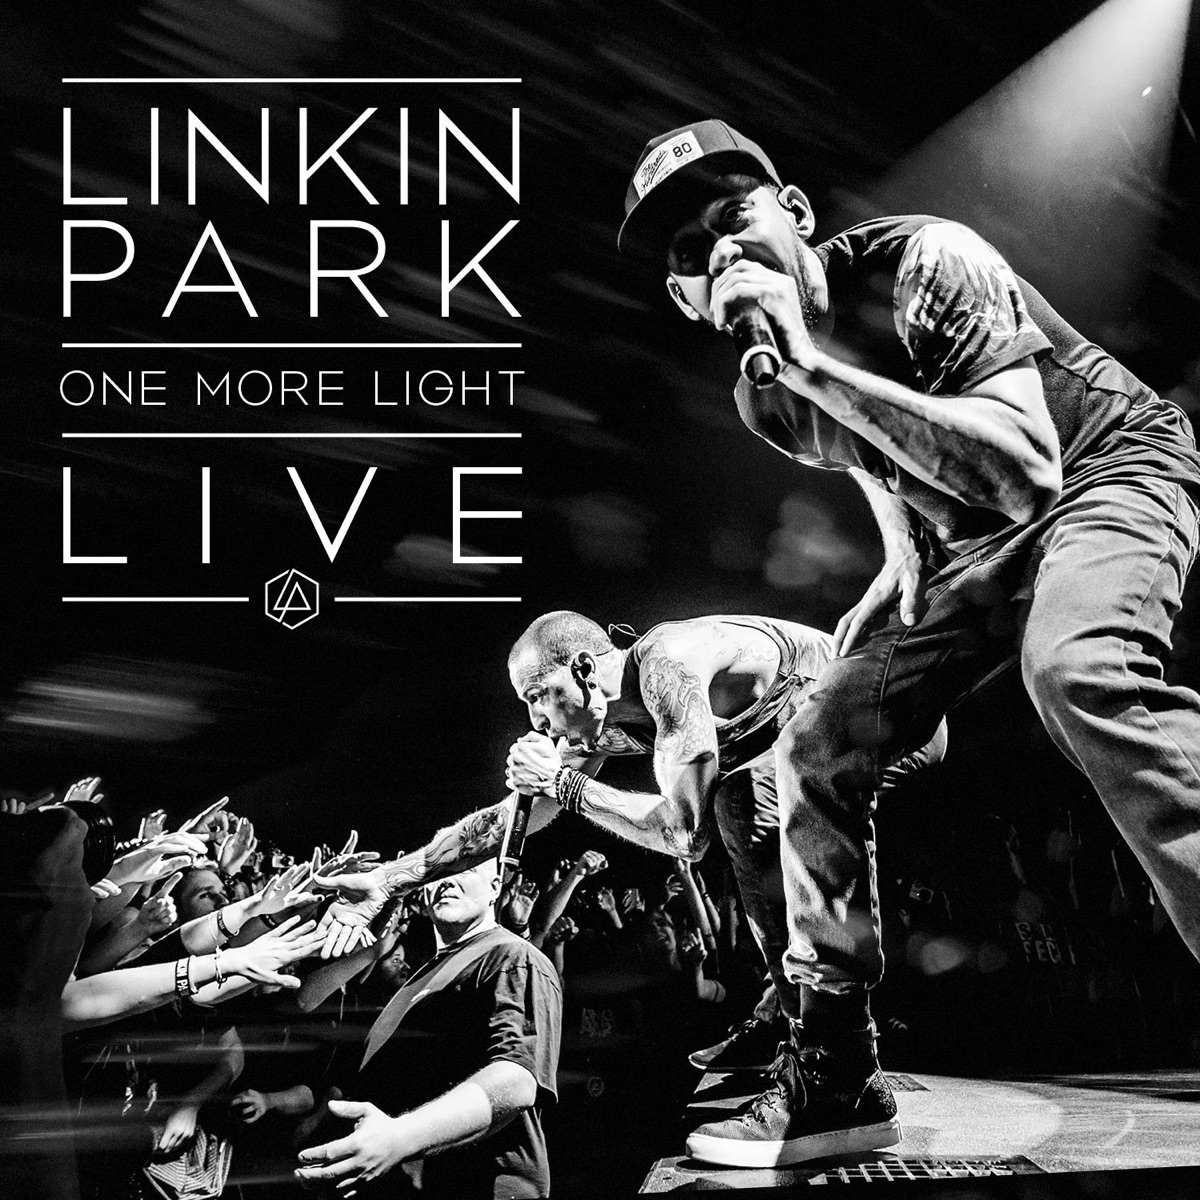 One More Light Live LINKIN PARK CD cover